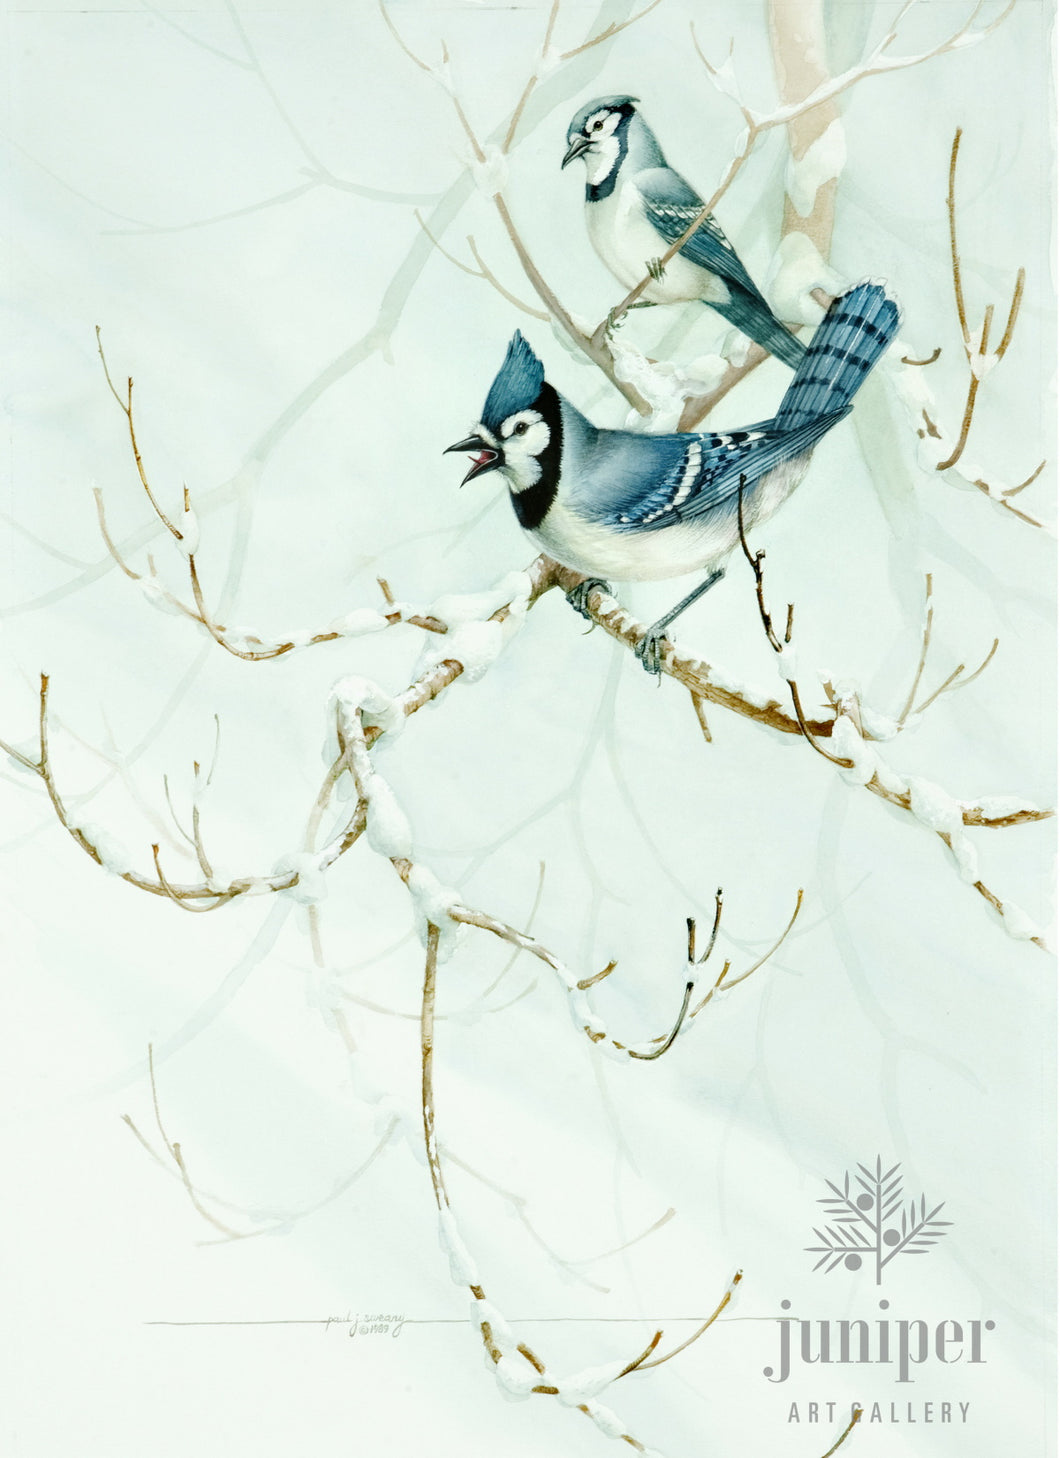 Winter Jays, giclee reproduction from original watercolor (1989) by Paul J Sweany